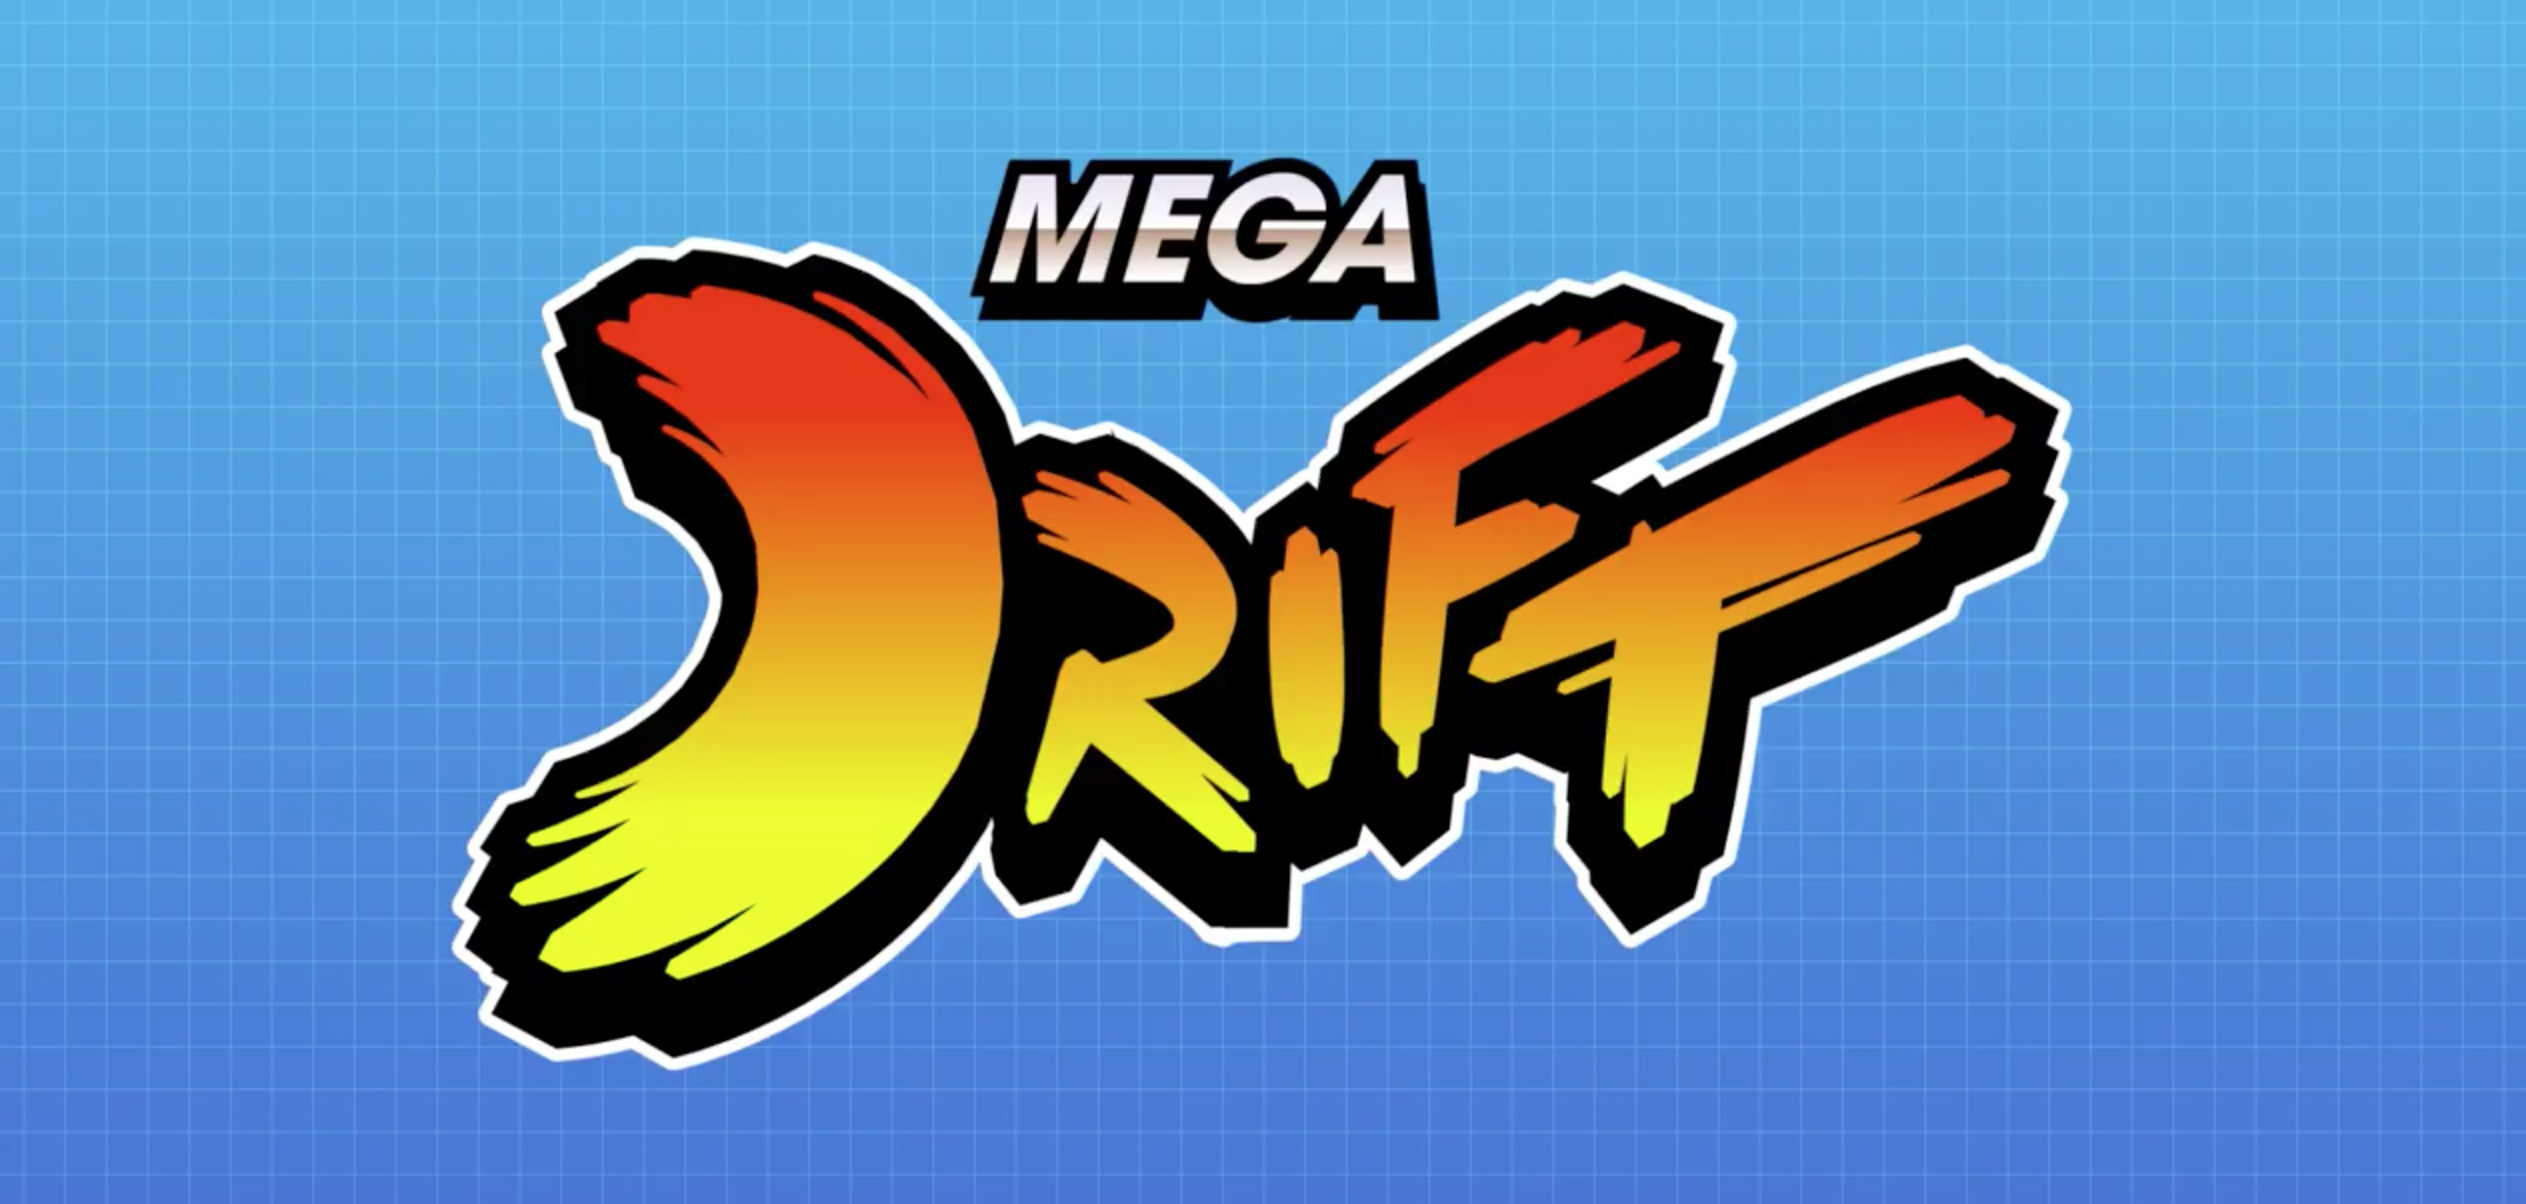 Get ready for Mega Drift, a car-drifting racer that's launching on iOS next week